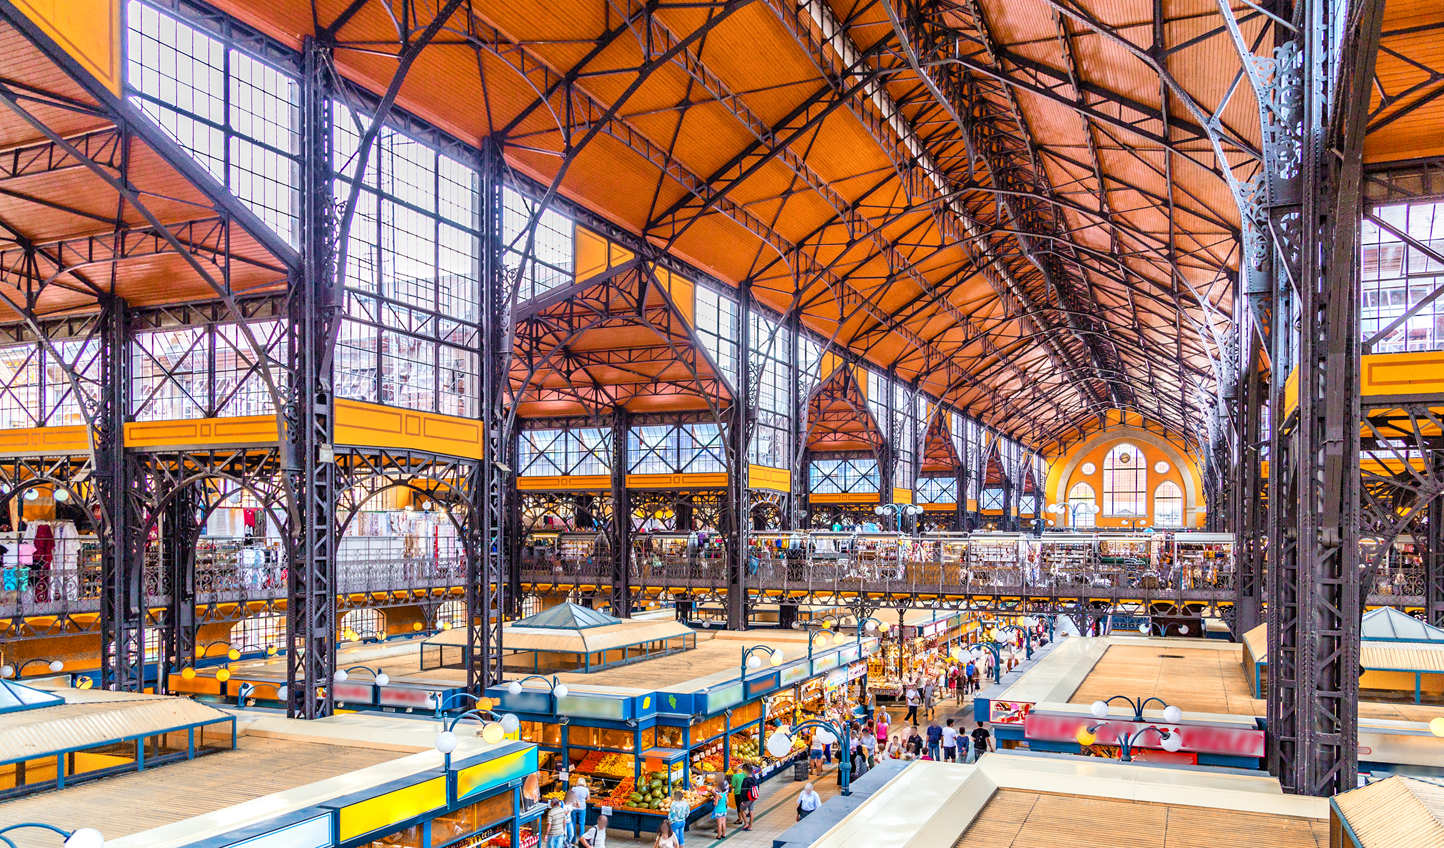 Explore Budapest's Great Market Hall